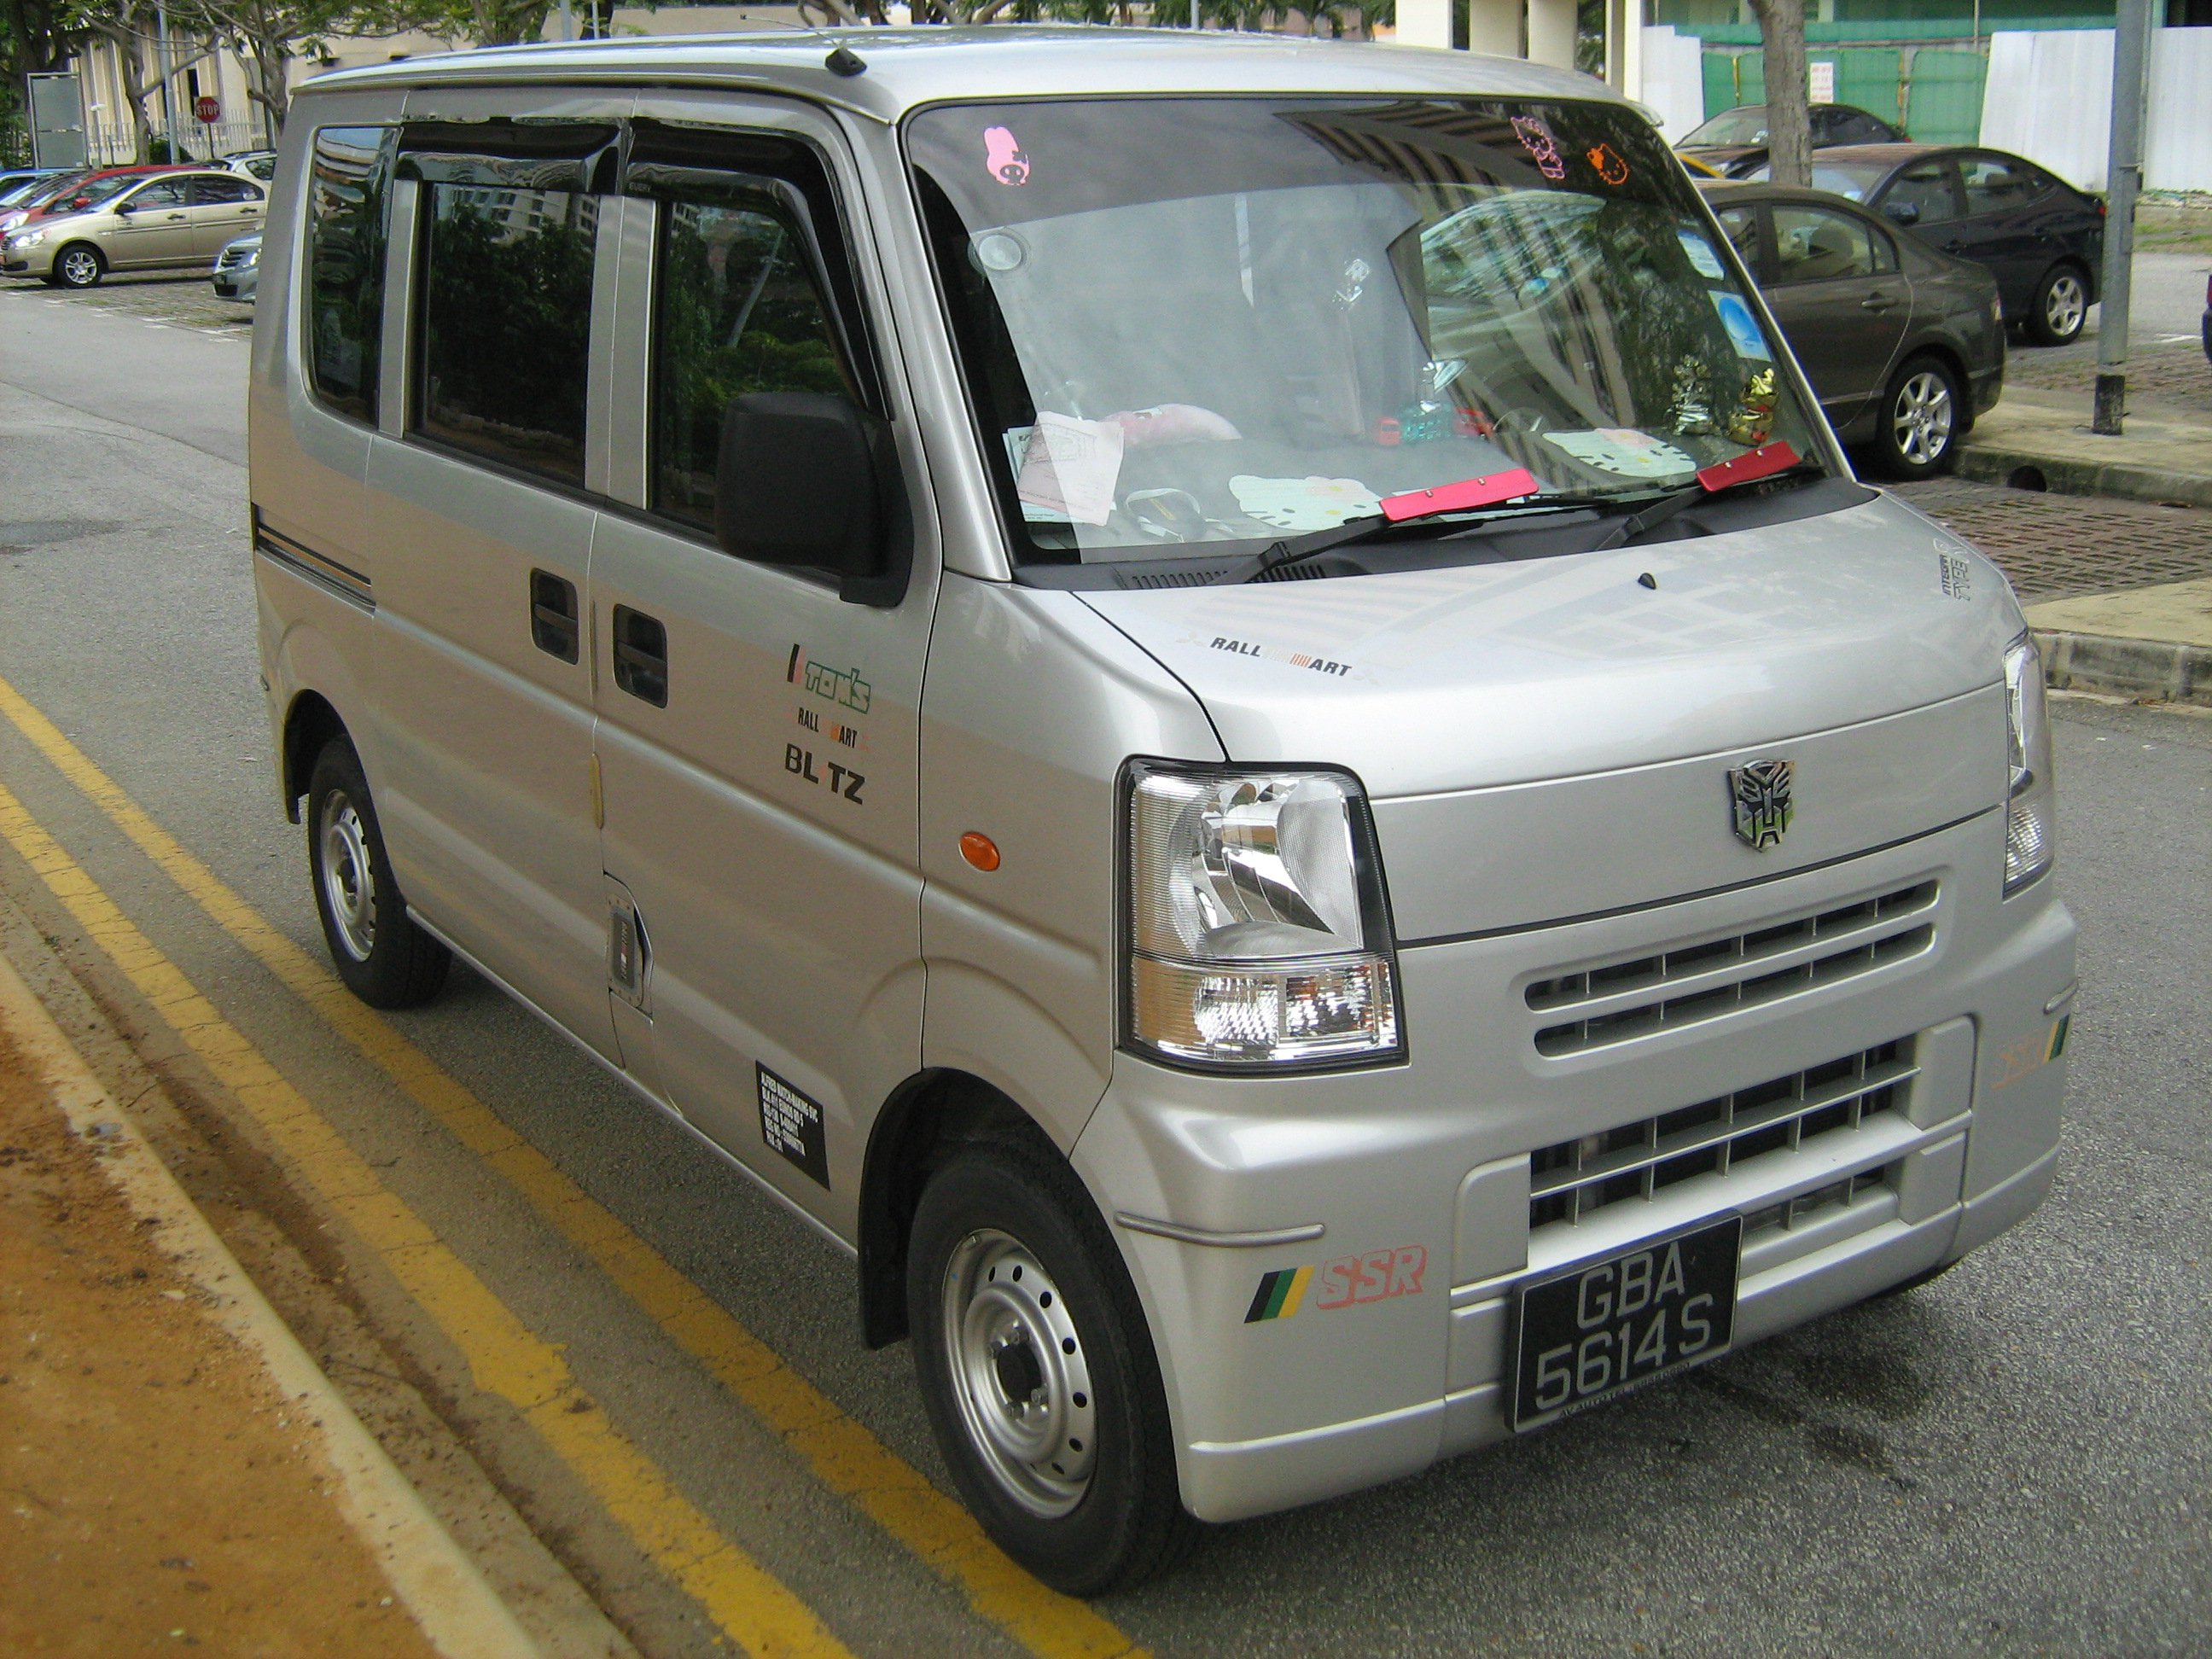 FOR SALE: Suzuki Every van for SALE Lady Driver, Auto transmission